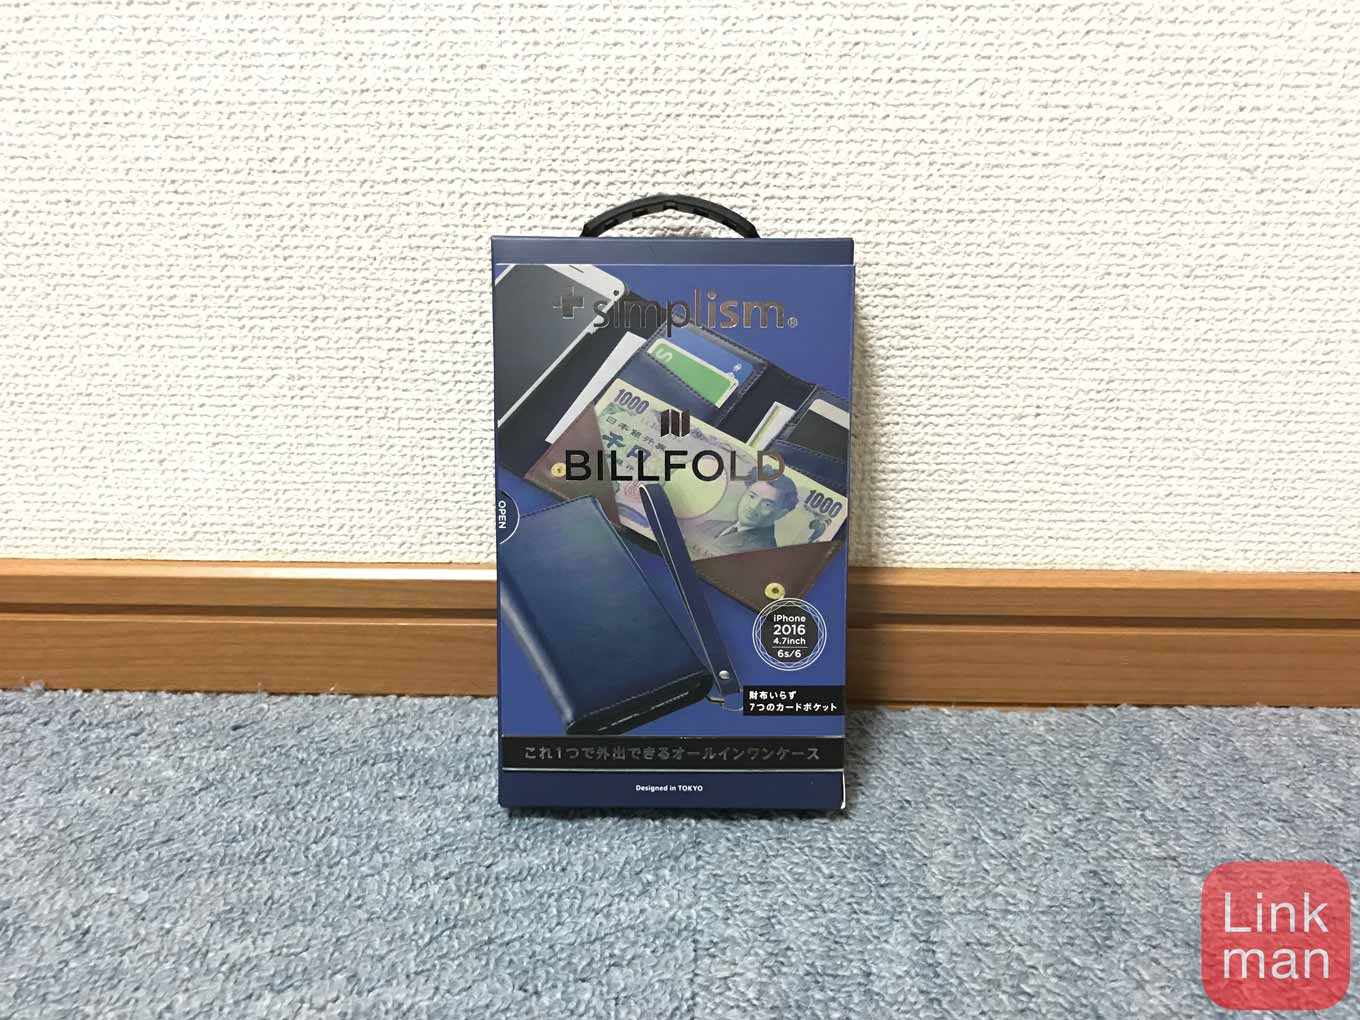 simplism、カードもお札も入るiPhone 7対応ケース「[BillFold] Flip Note Card Case for iPhone 7/6s/6」をチェック